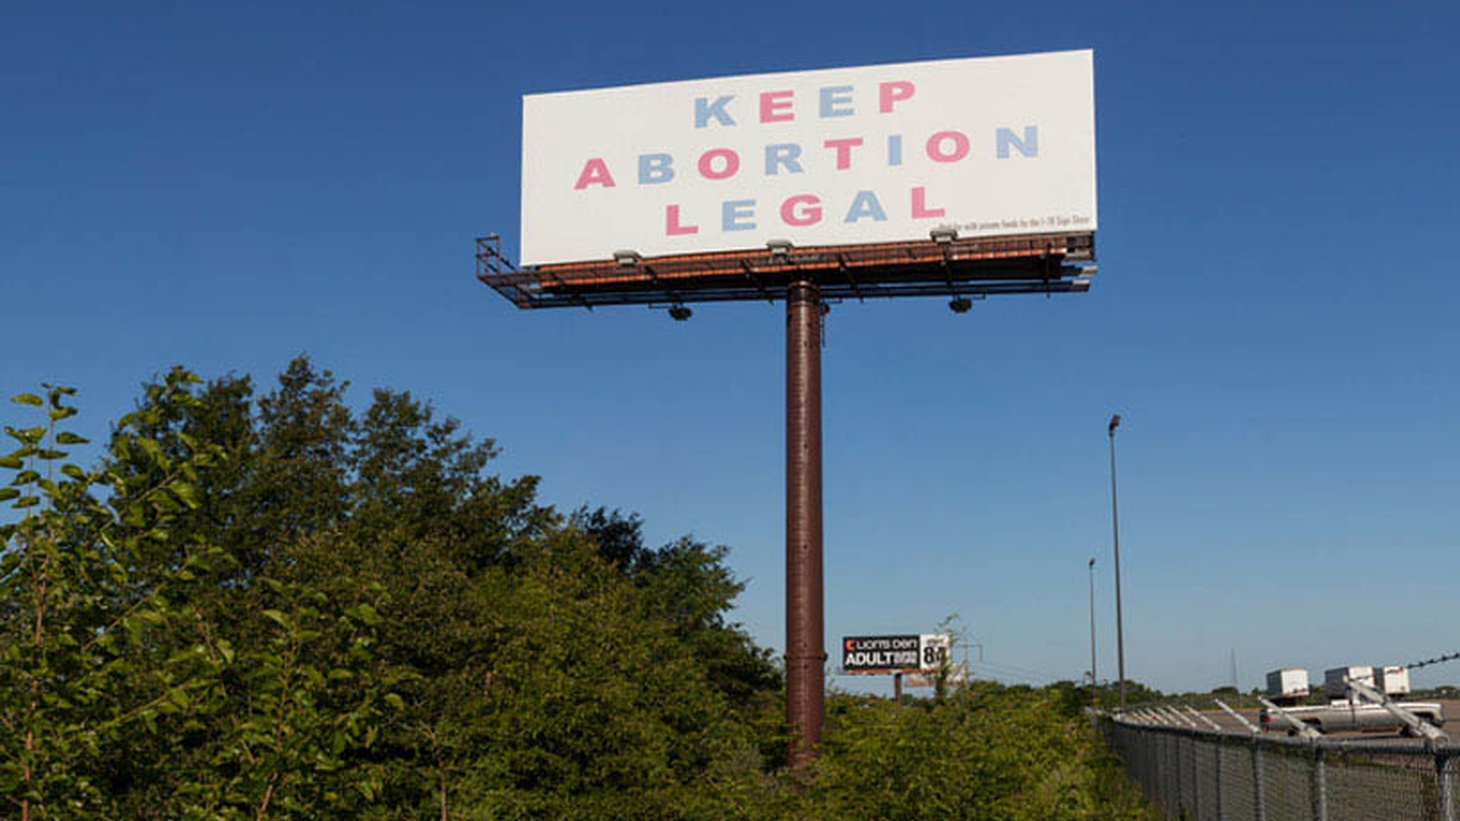 """If you drive along I-70 through Missouri, you'll see site-specific contemporary art displayed on the billboards. What happens when that artwork says """"Keep Abortion Legal""""?"""